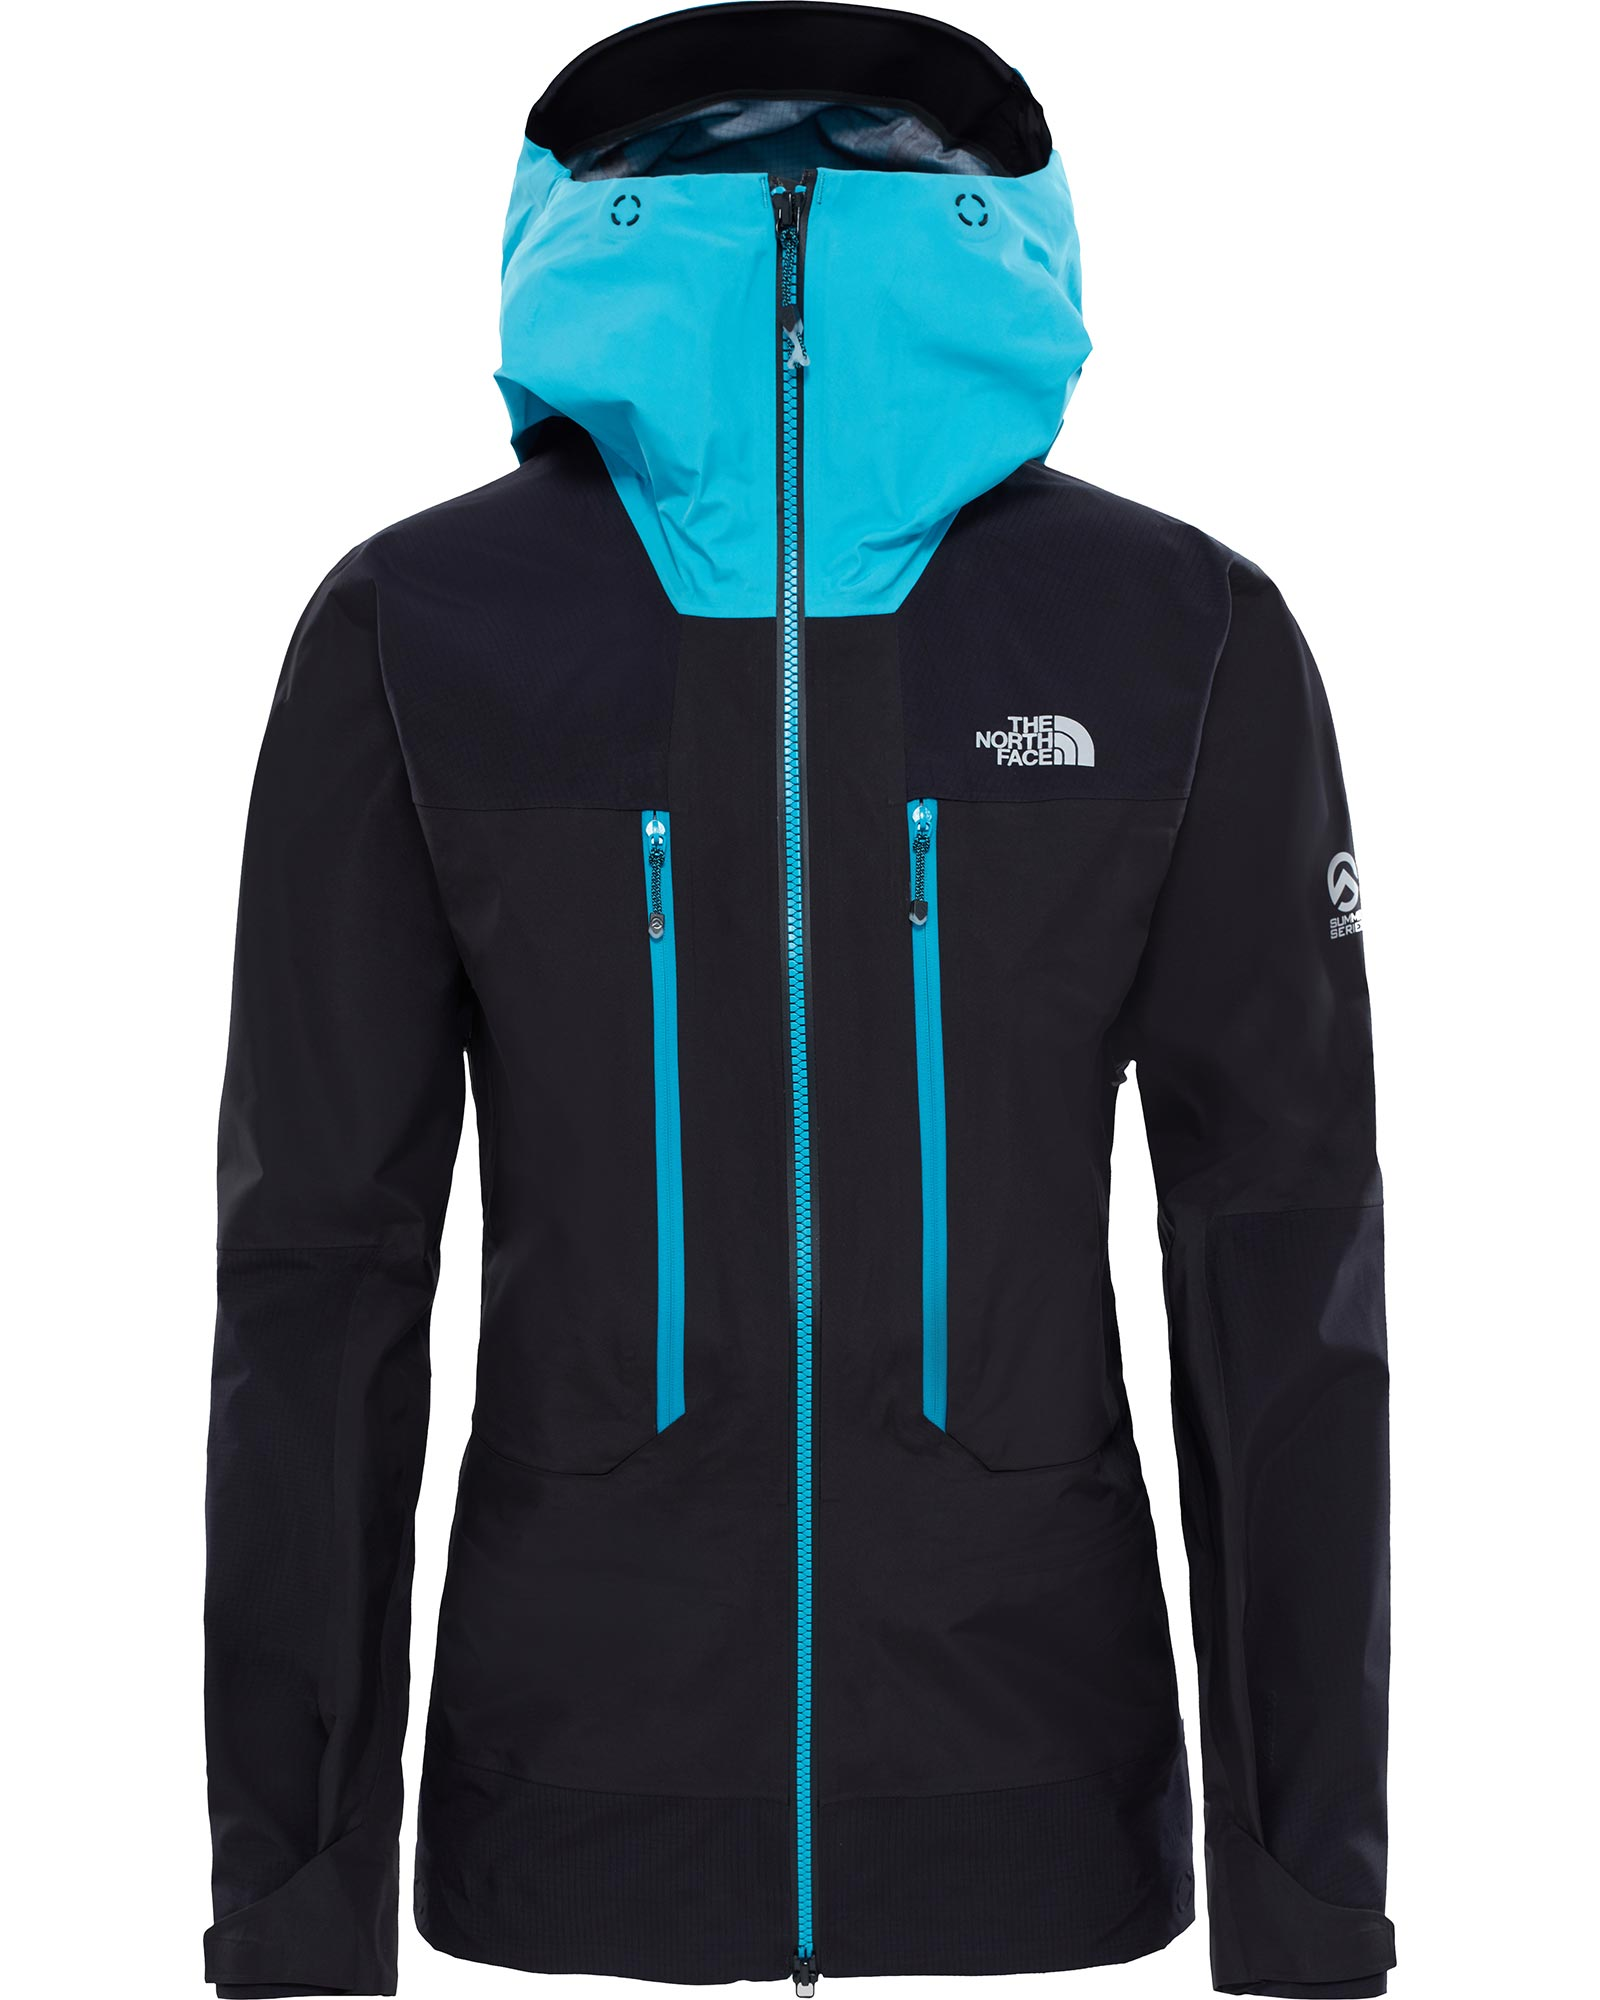 The North Face Summit Series L5 GORE-TEX Pro Women's Jacket 0